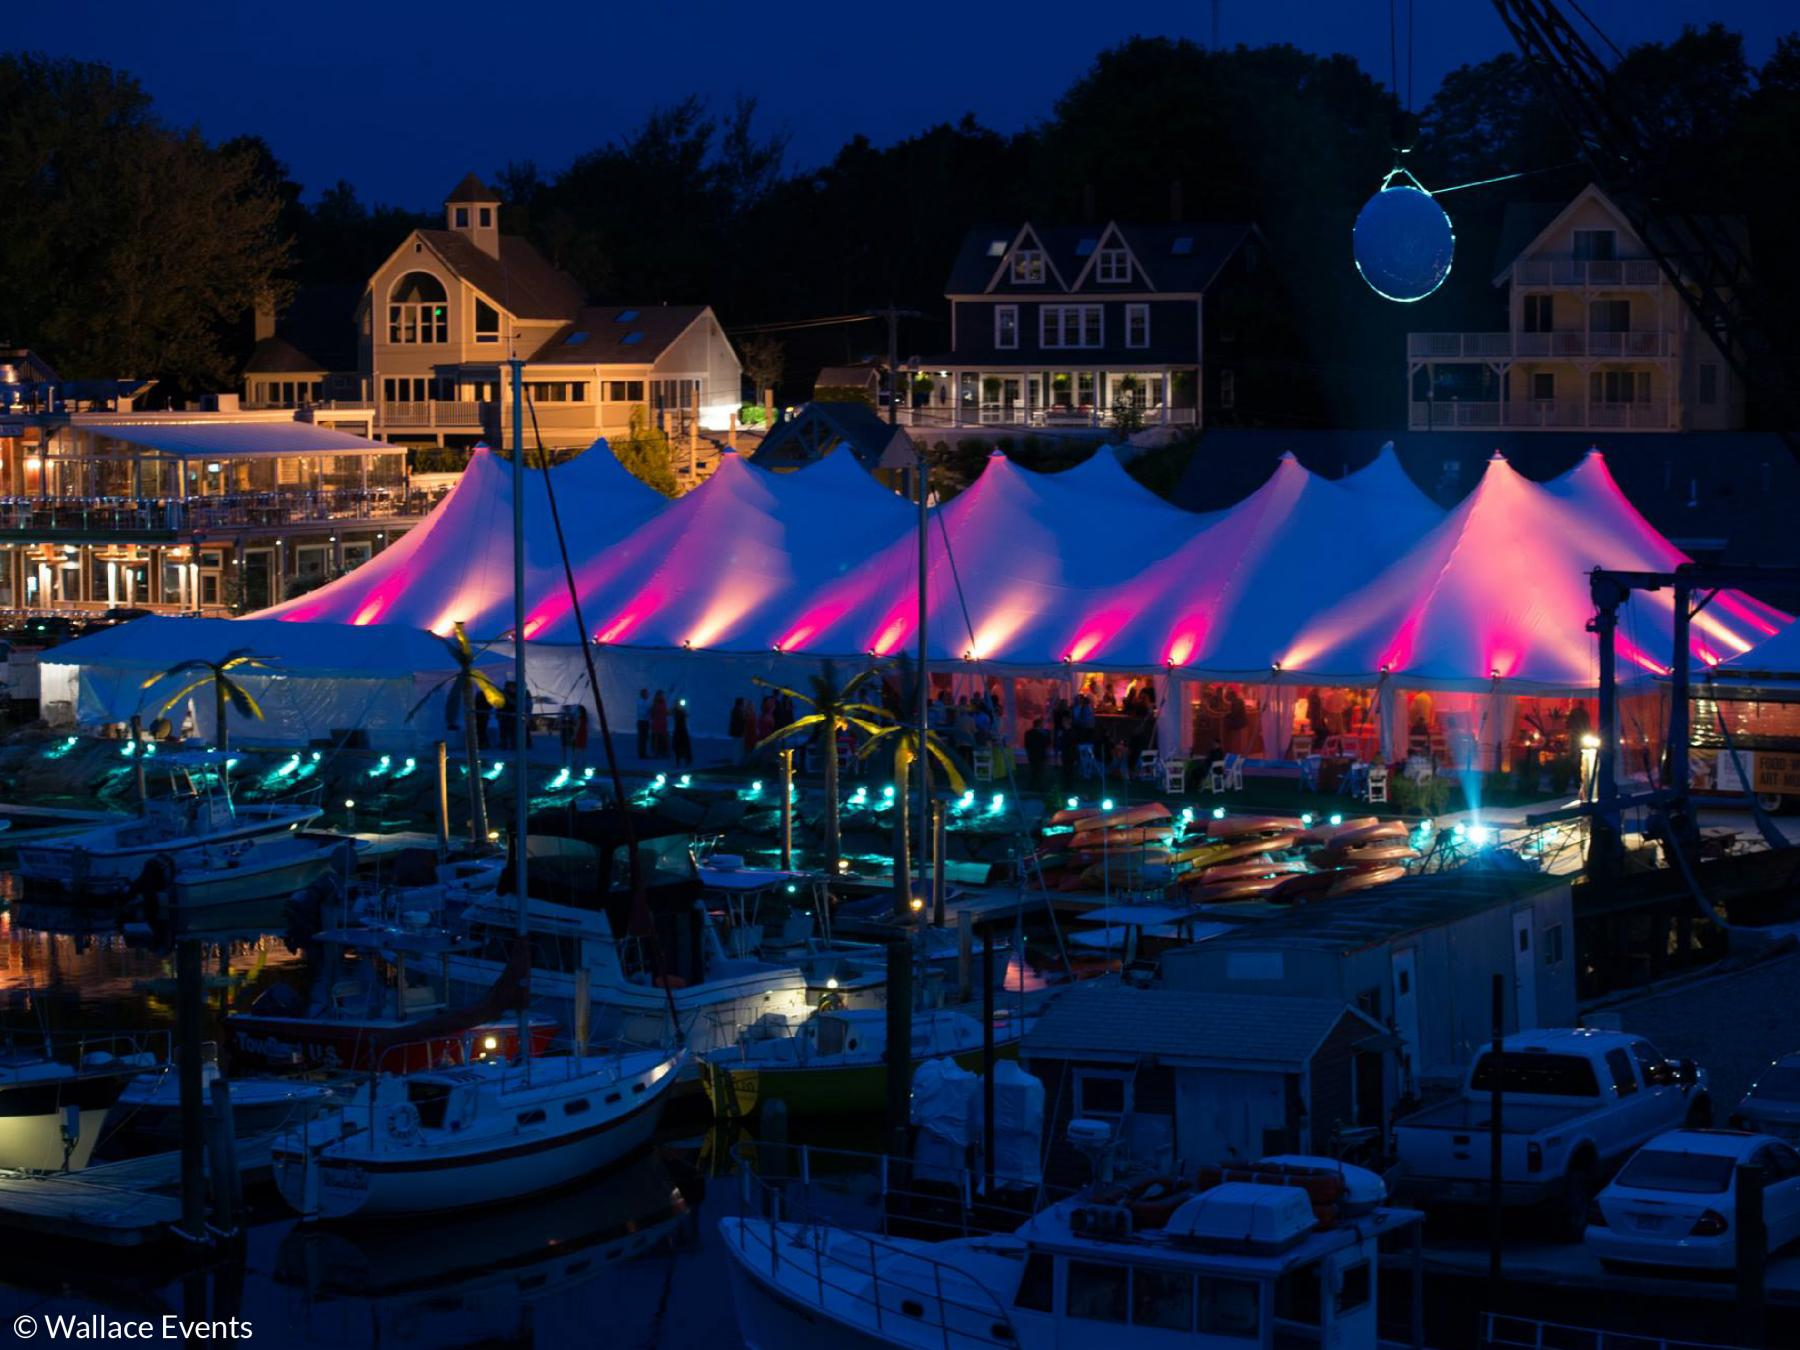 Stillwater tent set up by a marina